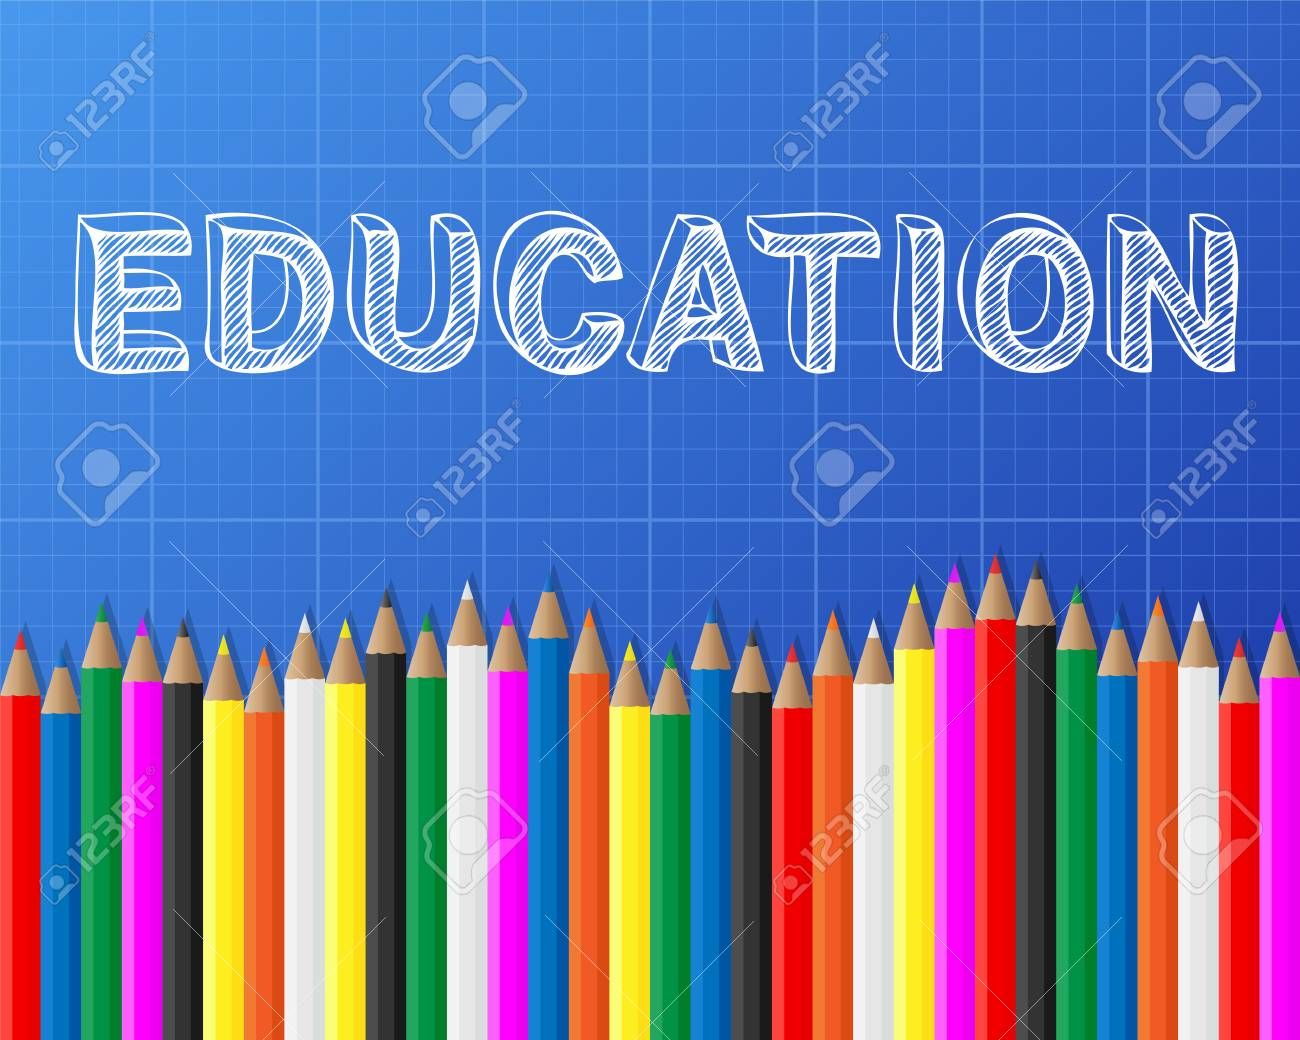 Education word on blueprint with pencils background royalty free education word on blueprint with pencils background stock vector 75784056 malvernweather Choice Image